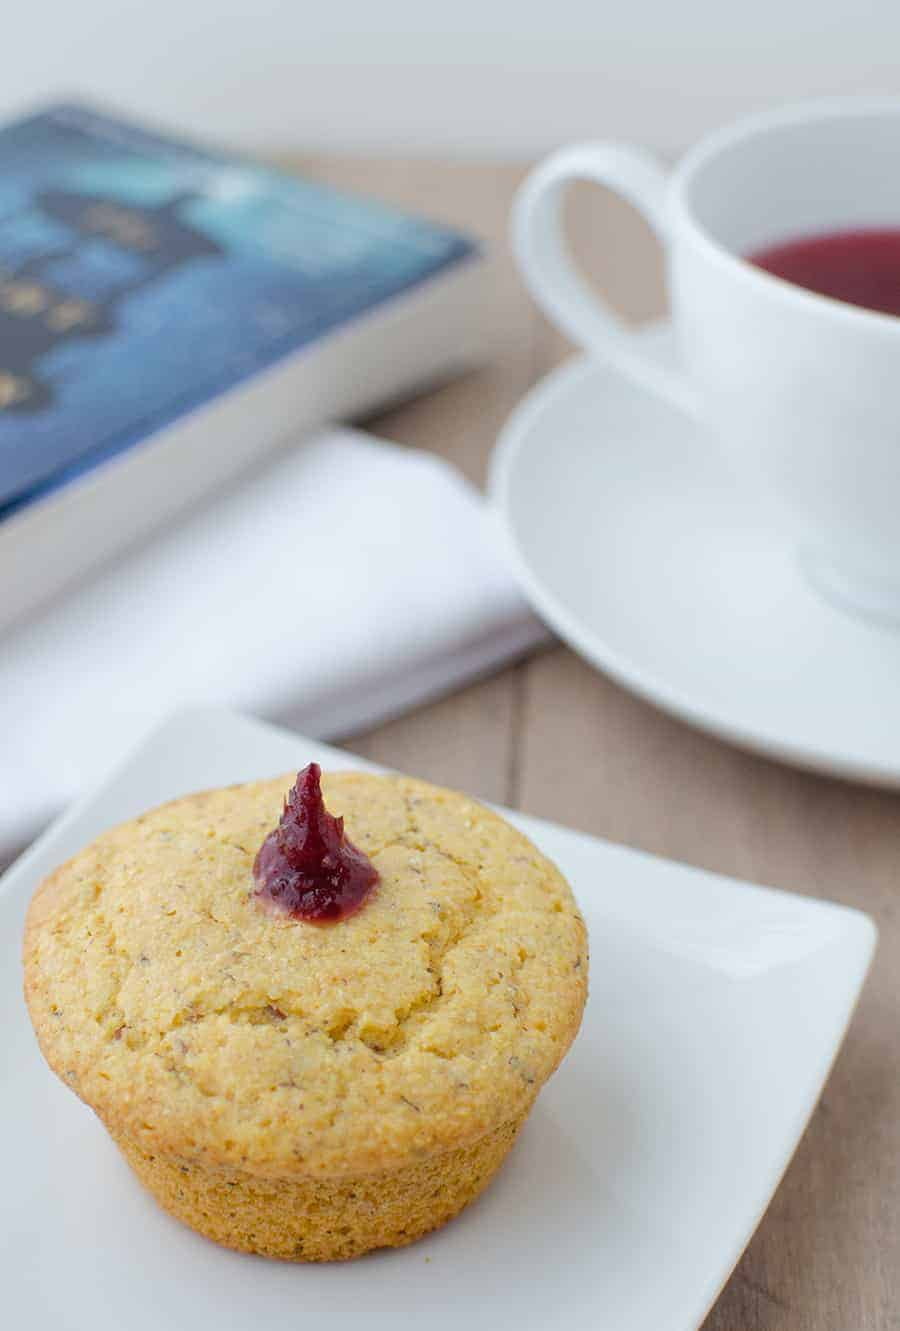 Get your bread baskets ready! These jam filled corn muffins are the perfect sweet & savory side to enjoy on it's own or with a full plate of Thanksgiving favorites. Vegan corn muffins stuffed with cranberry jam. | www.delishknowledge.com